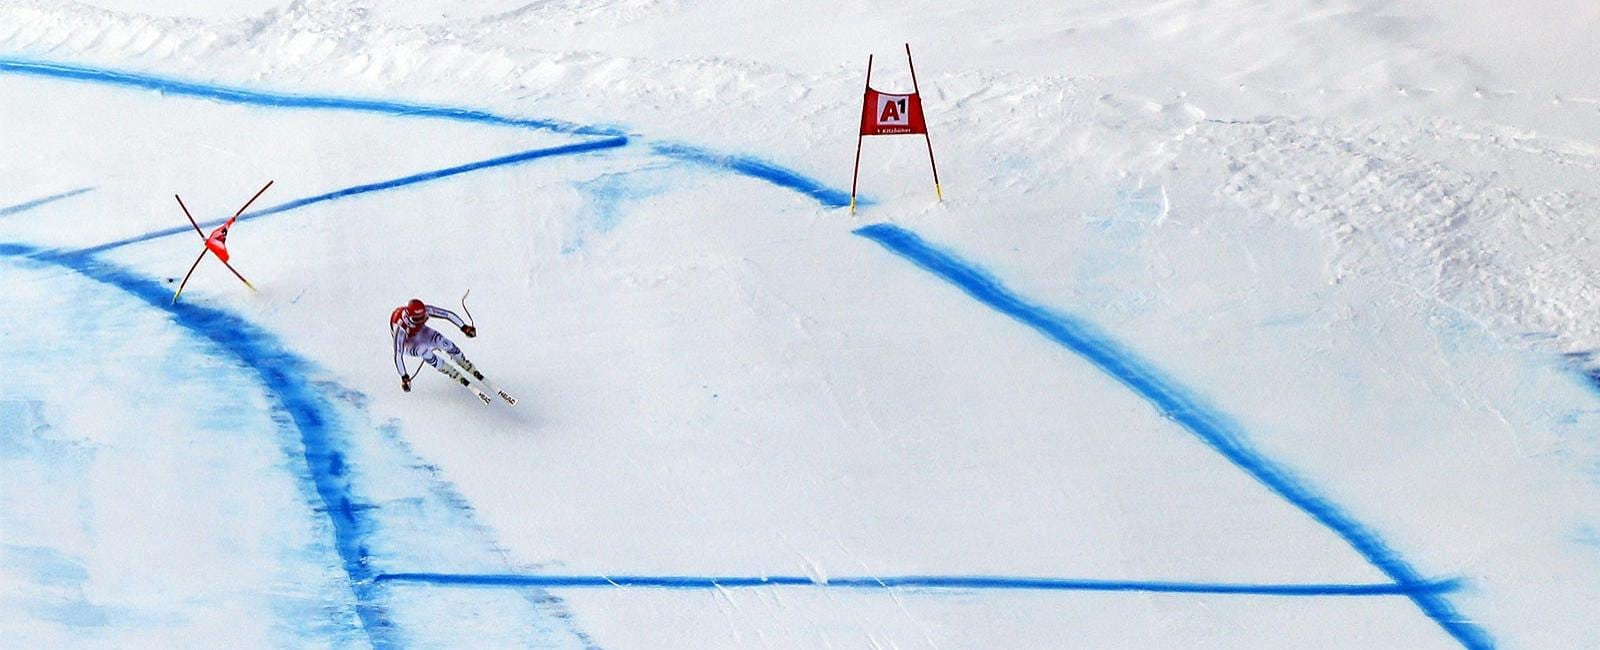 FIS Alpine Ski World Cup Men - Kitzbüehl; Alpine Skiing; 2019